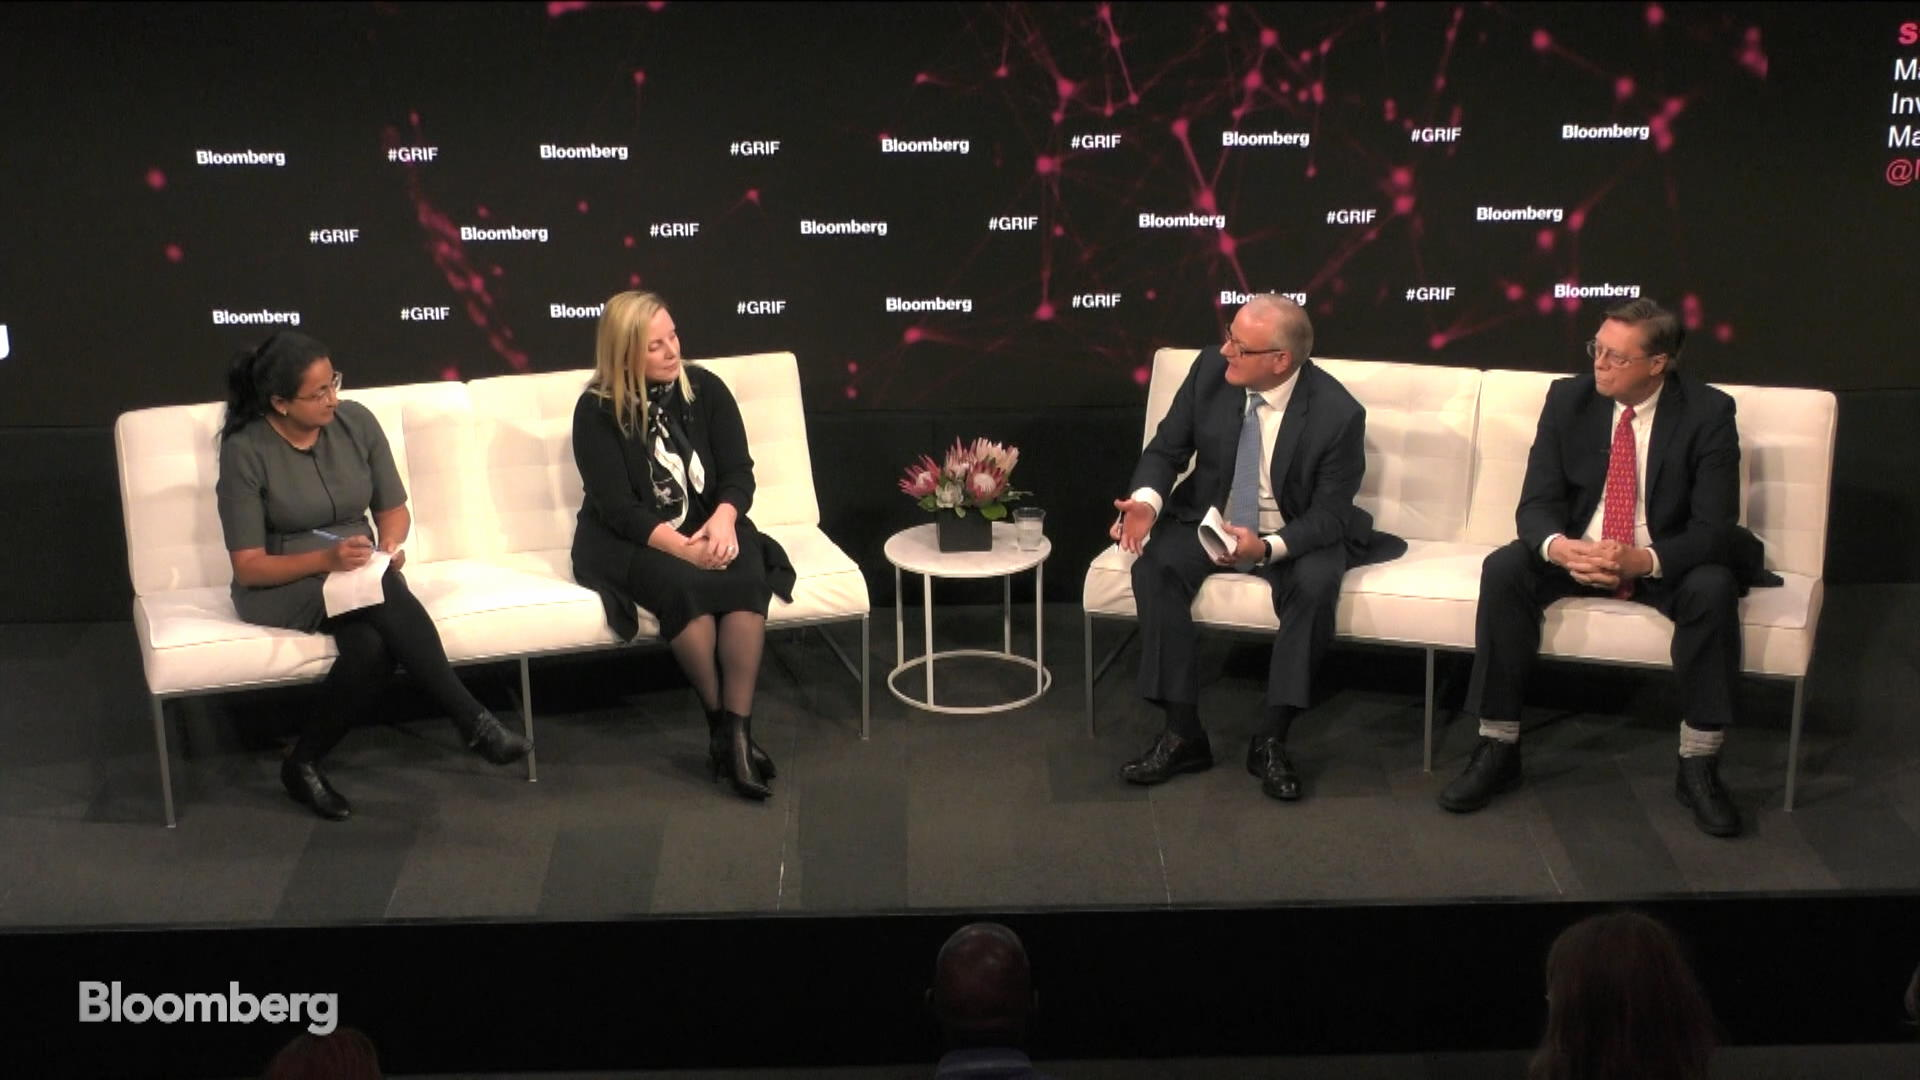 Nuveen, AXA Execs on Investing, Climate Action